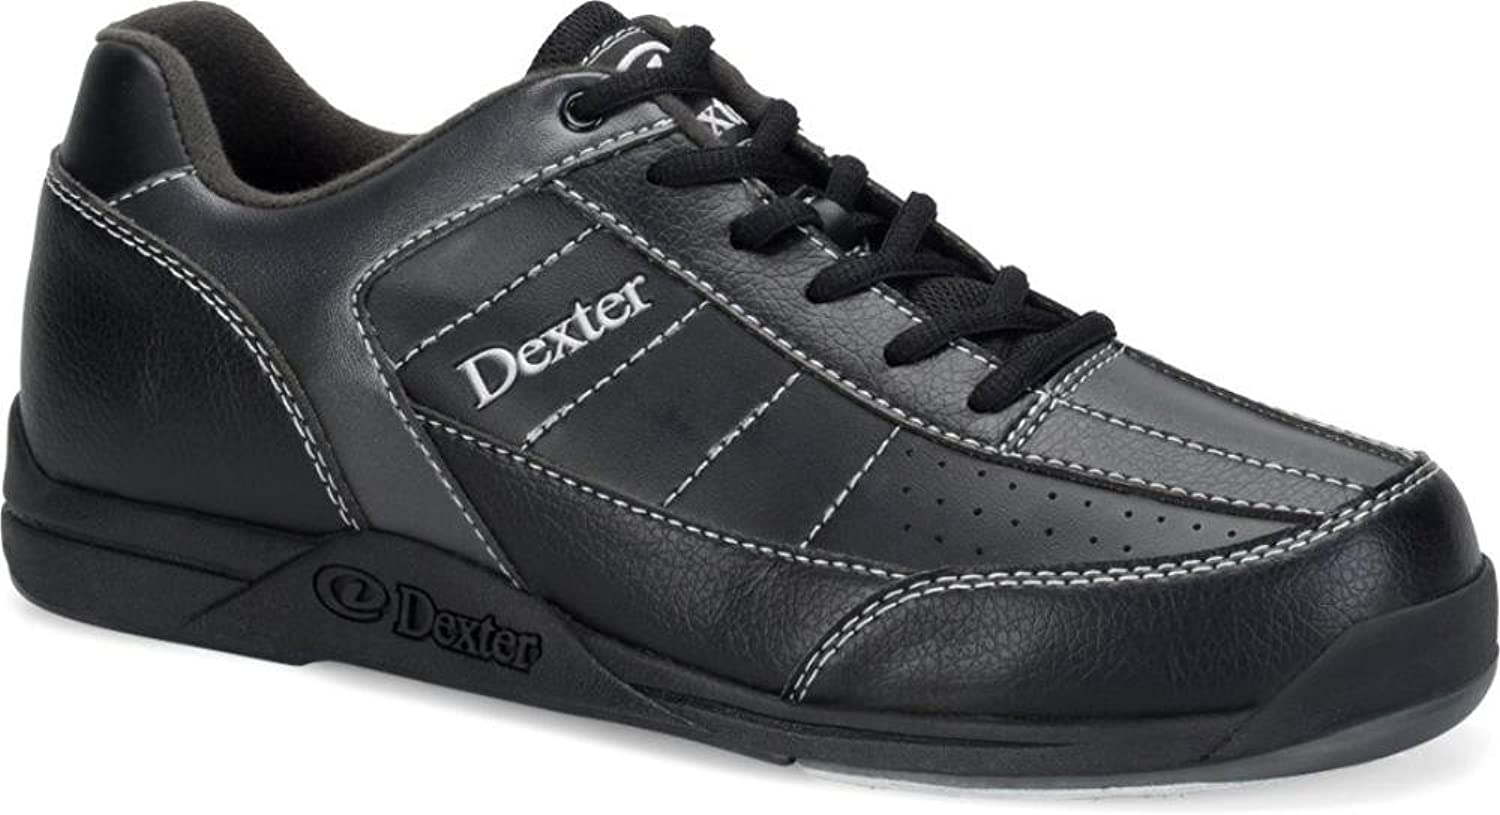 Dexter Men's Ricky III Bowling shoes Black Alloy